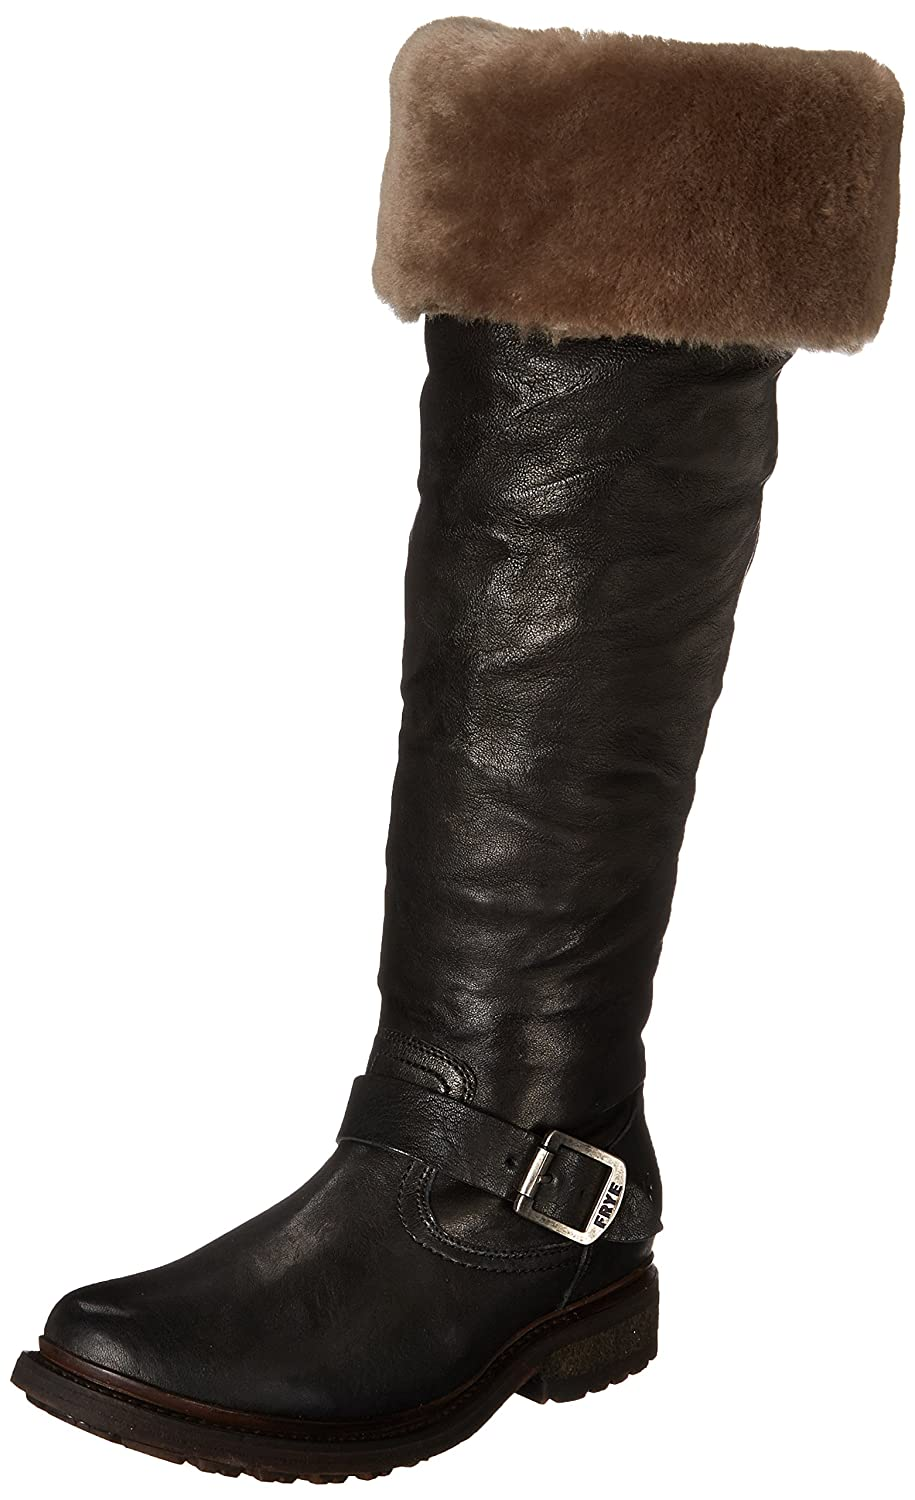 FRYE Women's Valerie Shearling Over-The-Knee Riding Boot B00IMJK3NK 9.5 B(M) US|Black-75006